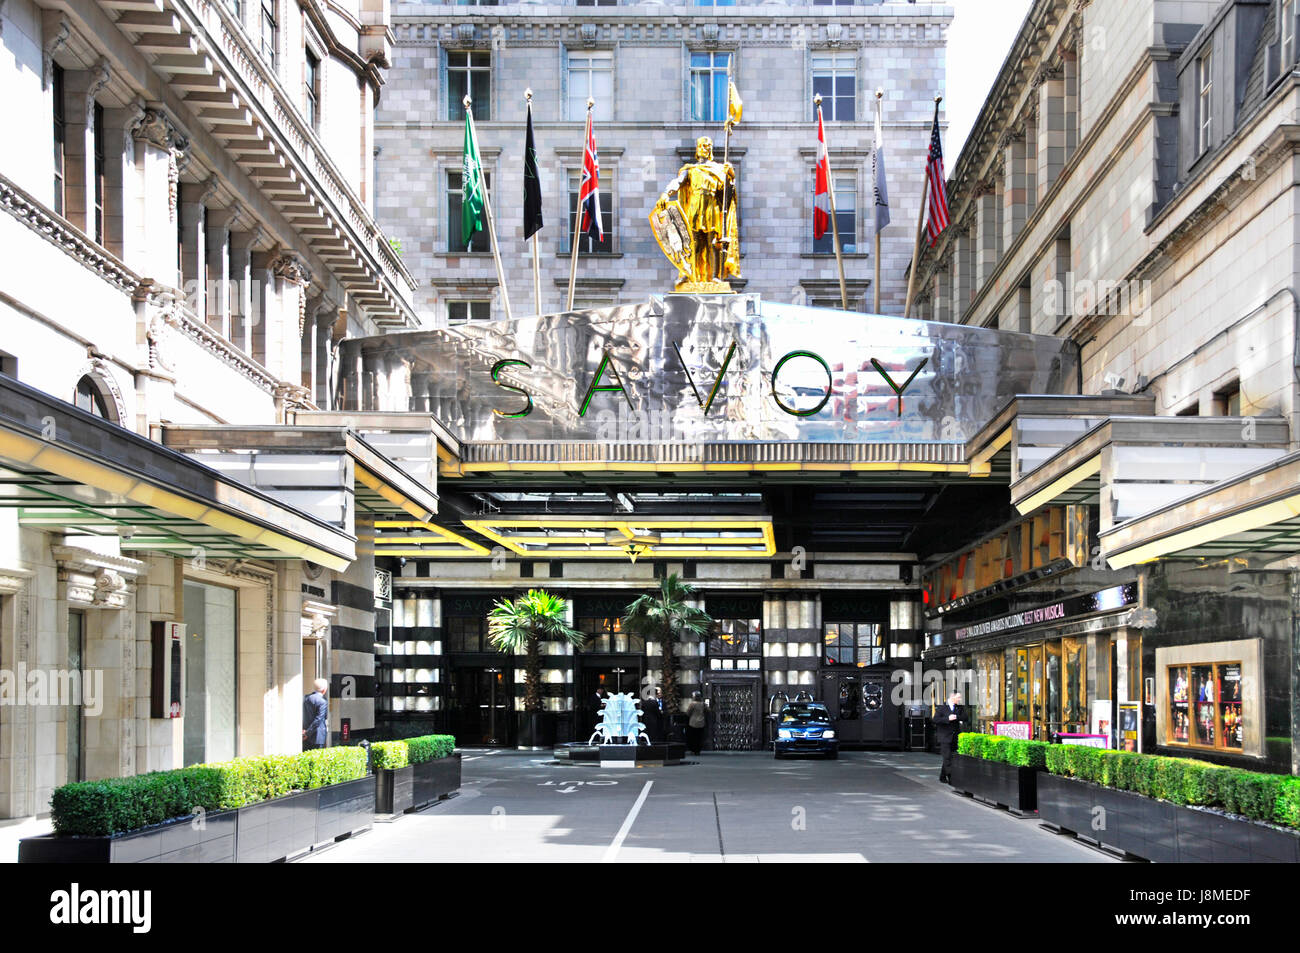 Savoy Hotel London England UK managed by Fairmont Hotels and Resorts entrance unusually free of taxis because of - Stock Image